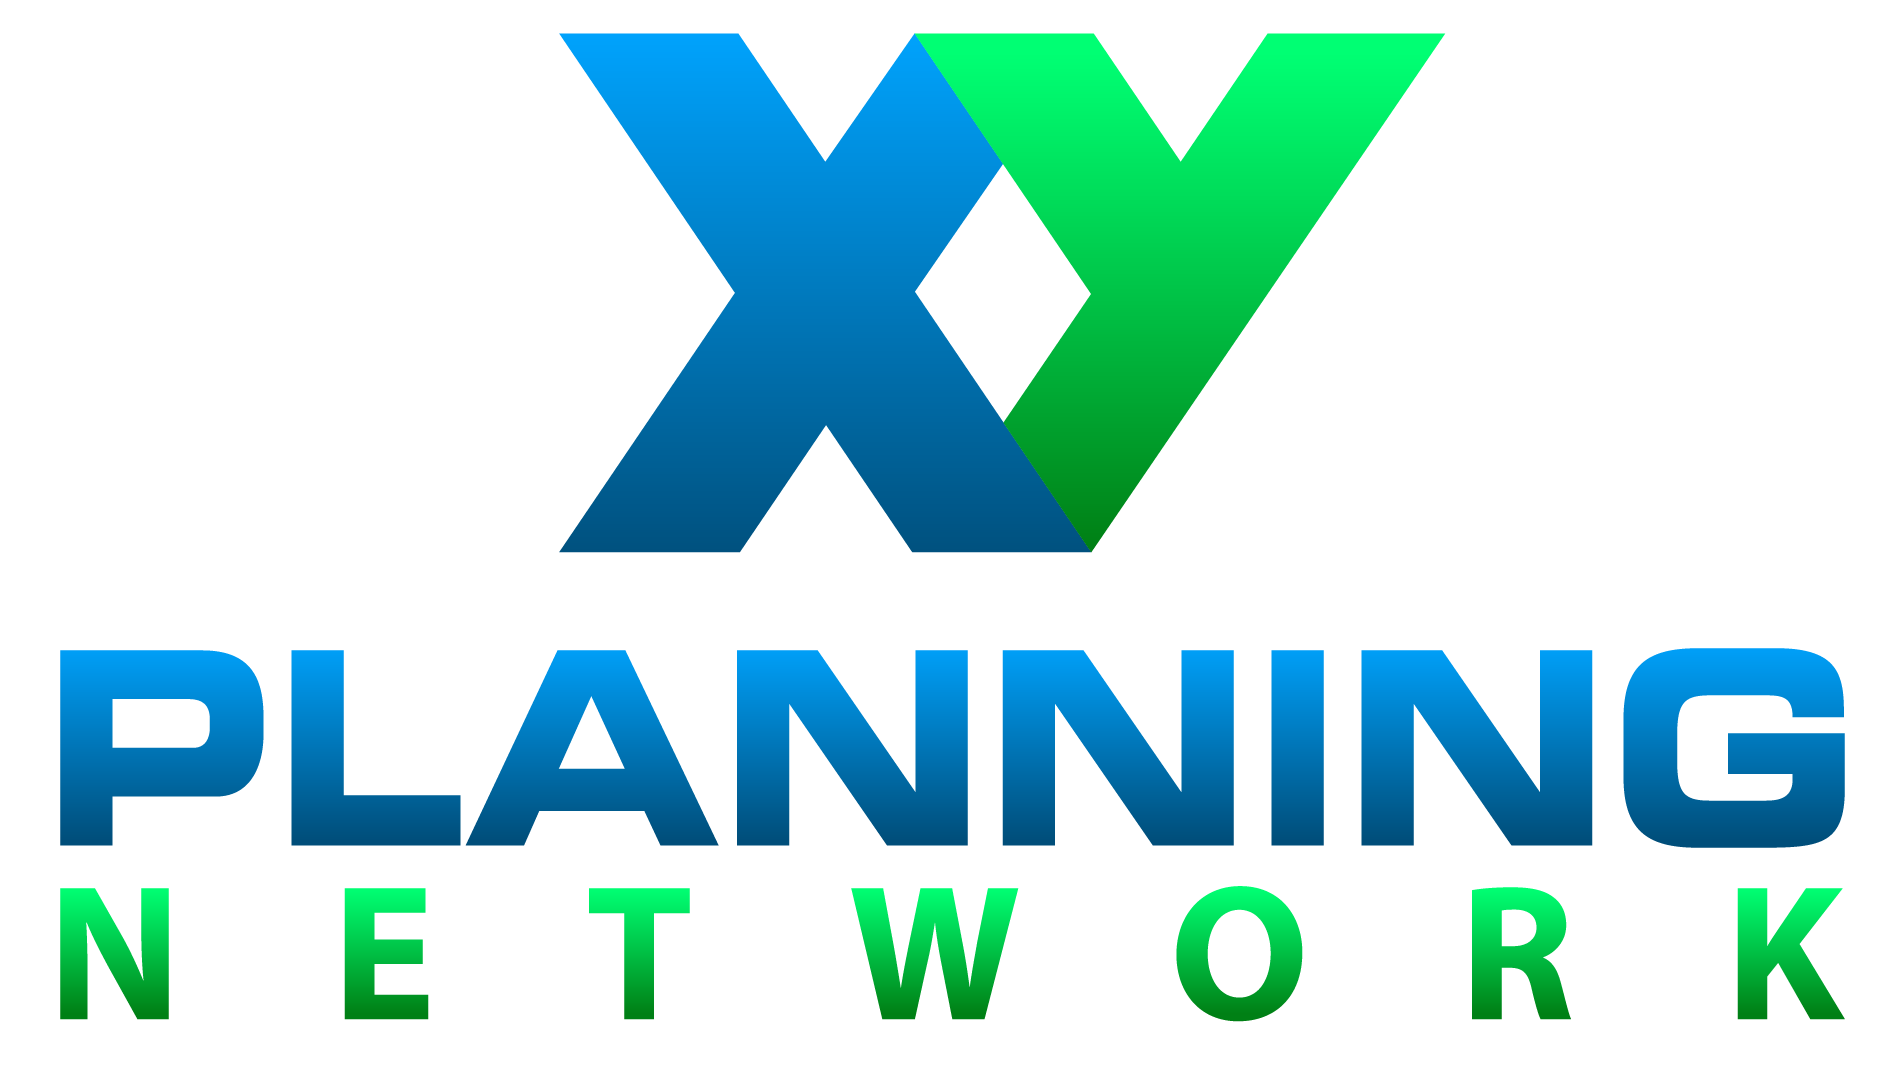 XY planning network, XYPN, peoria IL, eagle ridge wealth advisors